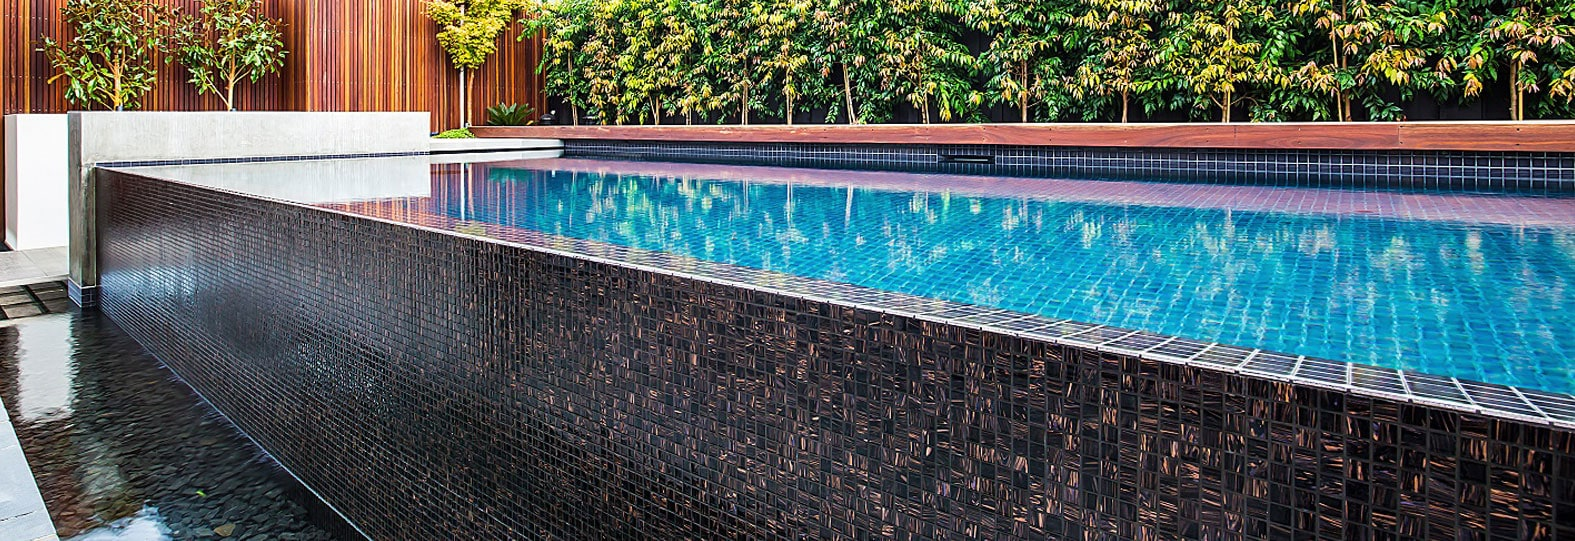 Choosing the Right Grout Colour for Glass Mosaic Pool Tiles ...